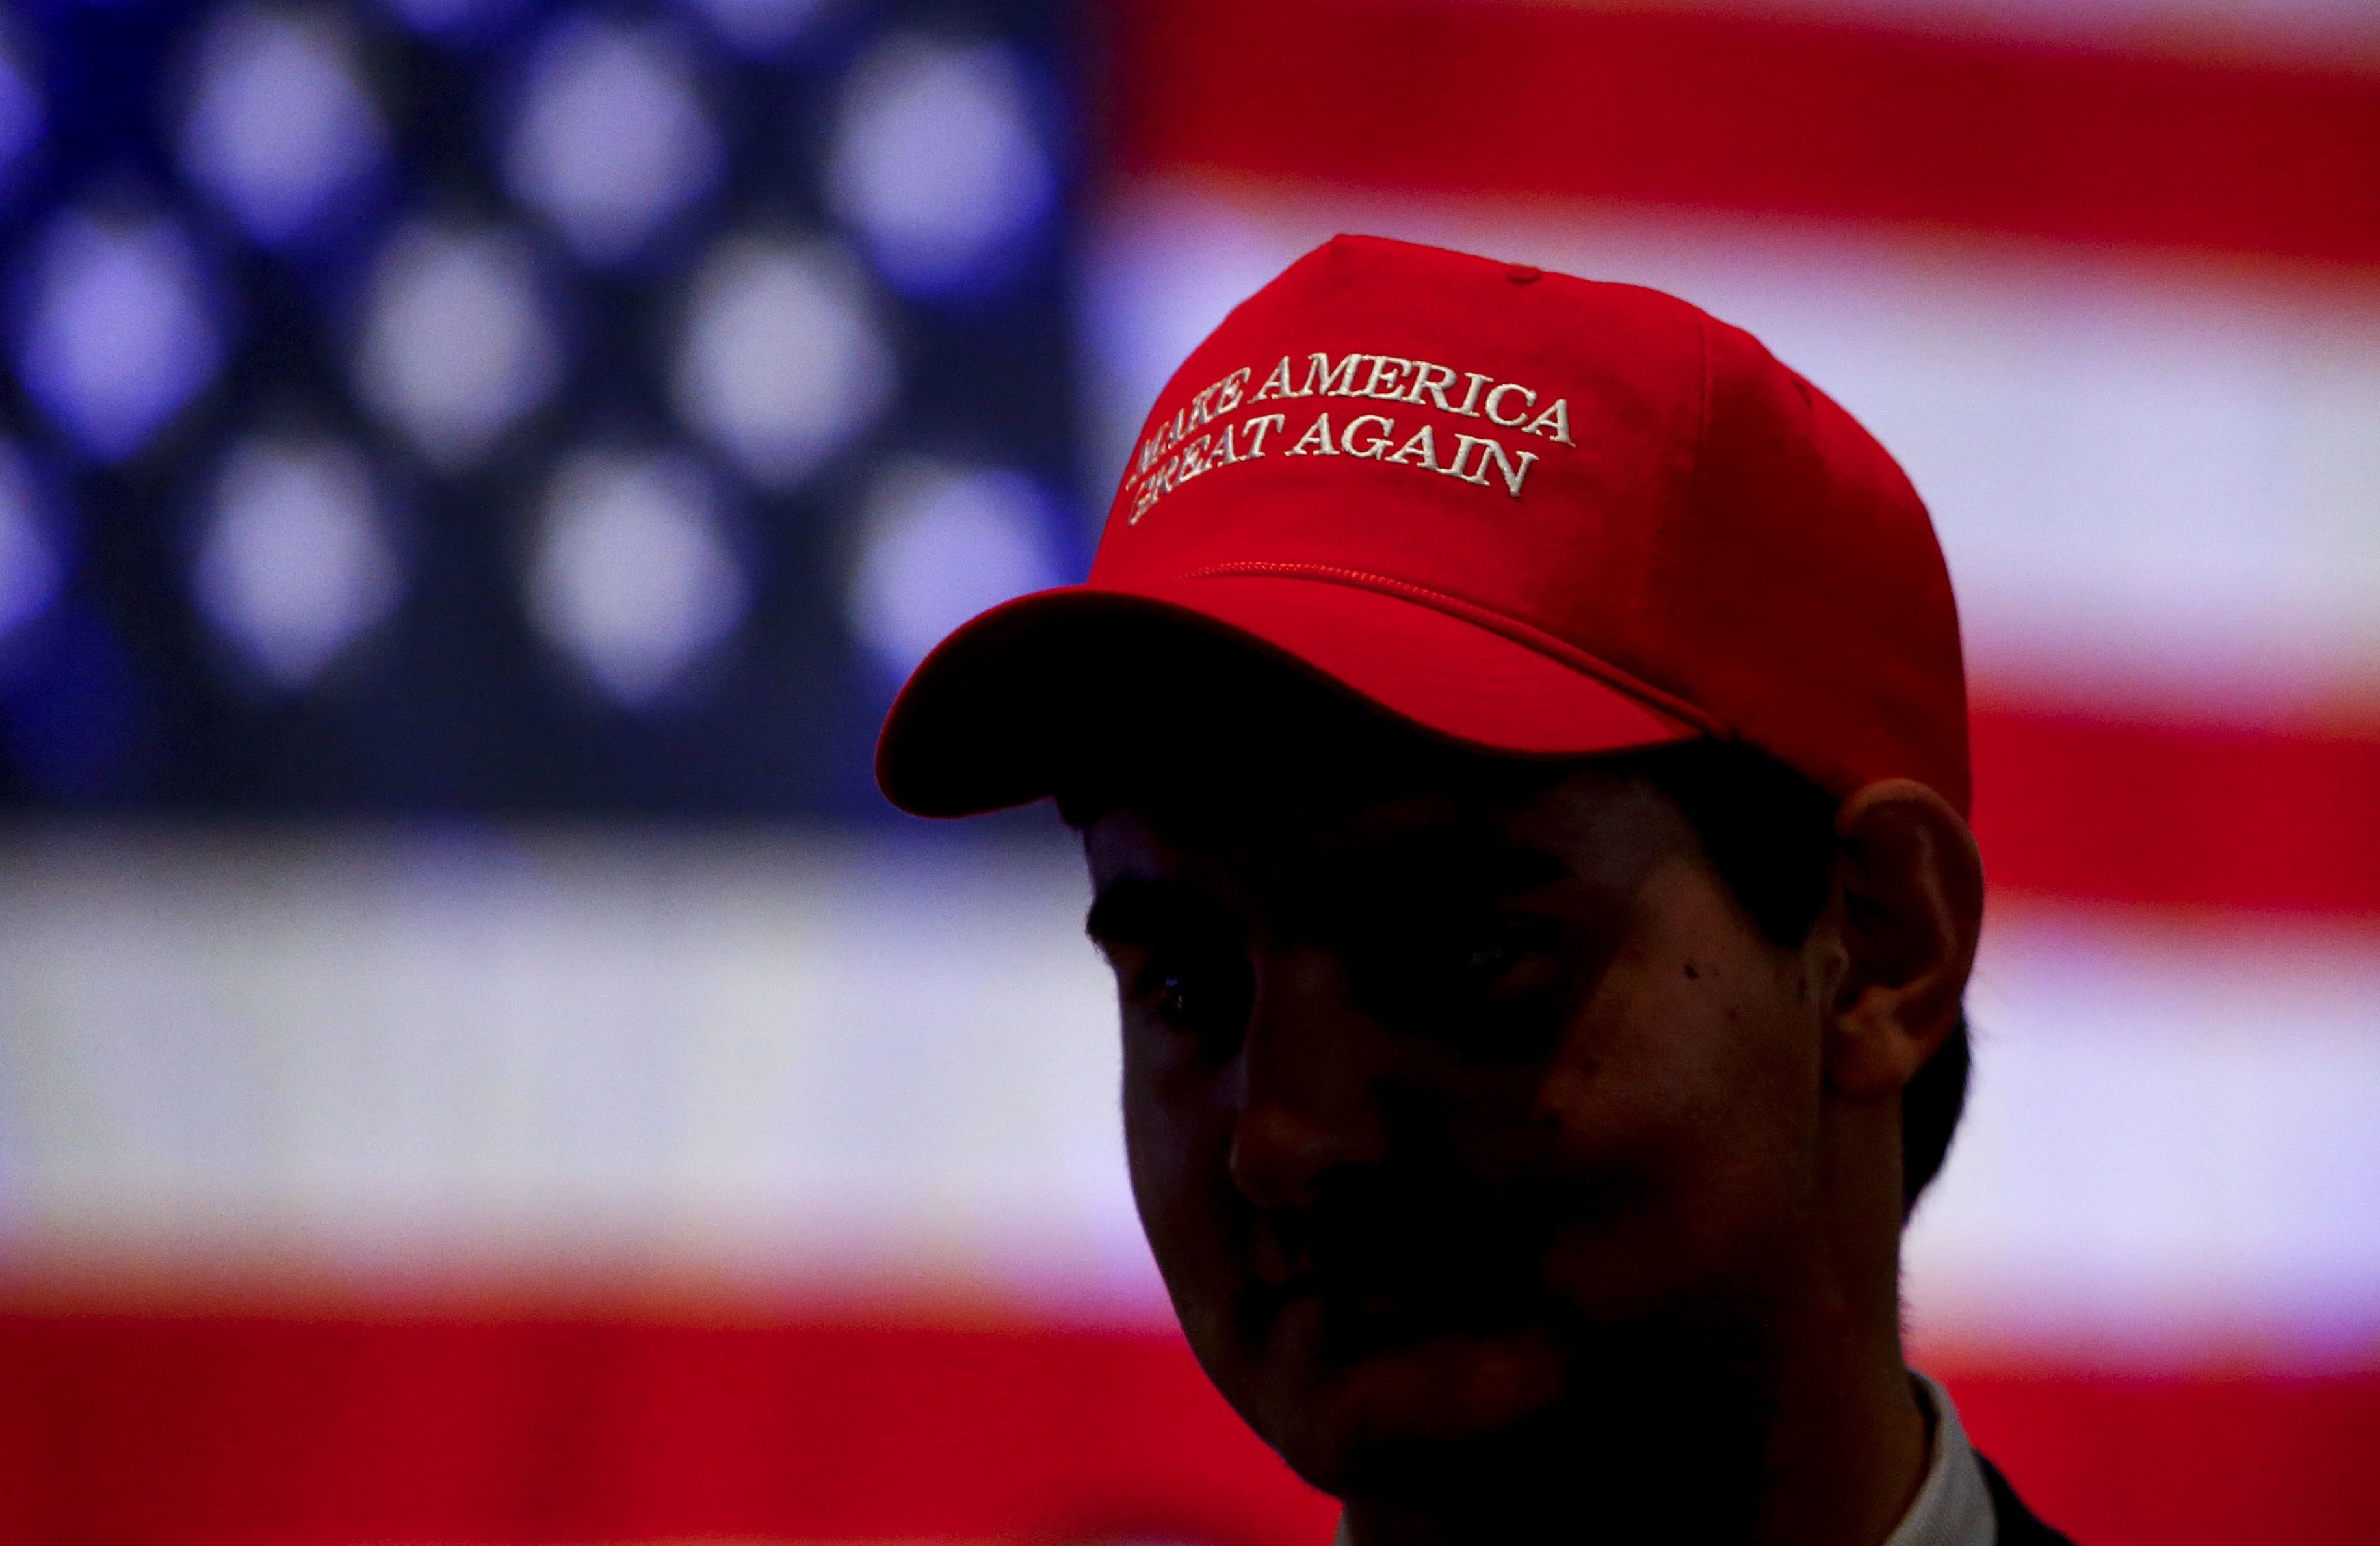 A woman was charged in the assault of a man wearing a MAGA